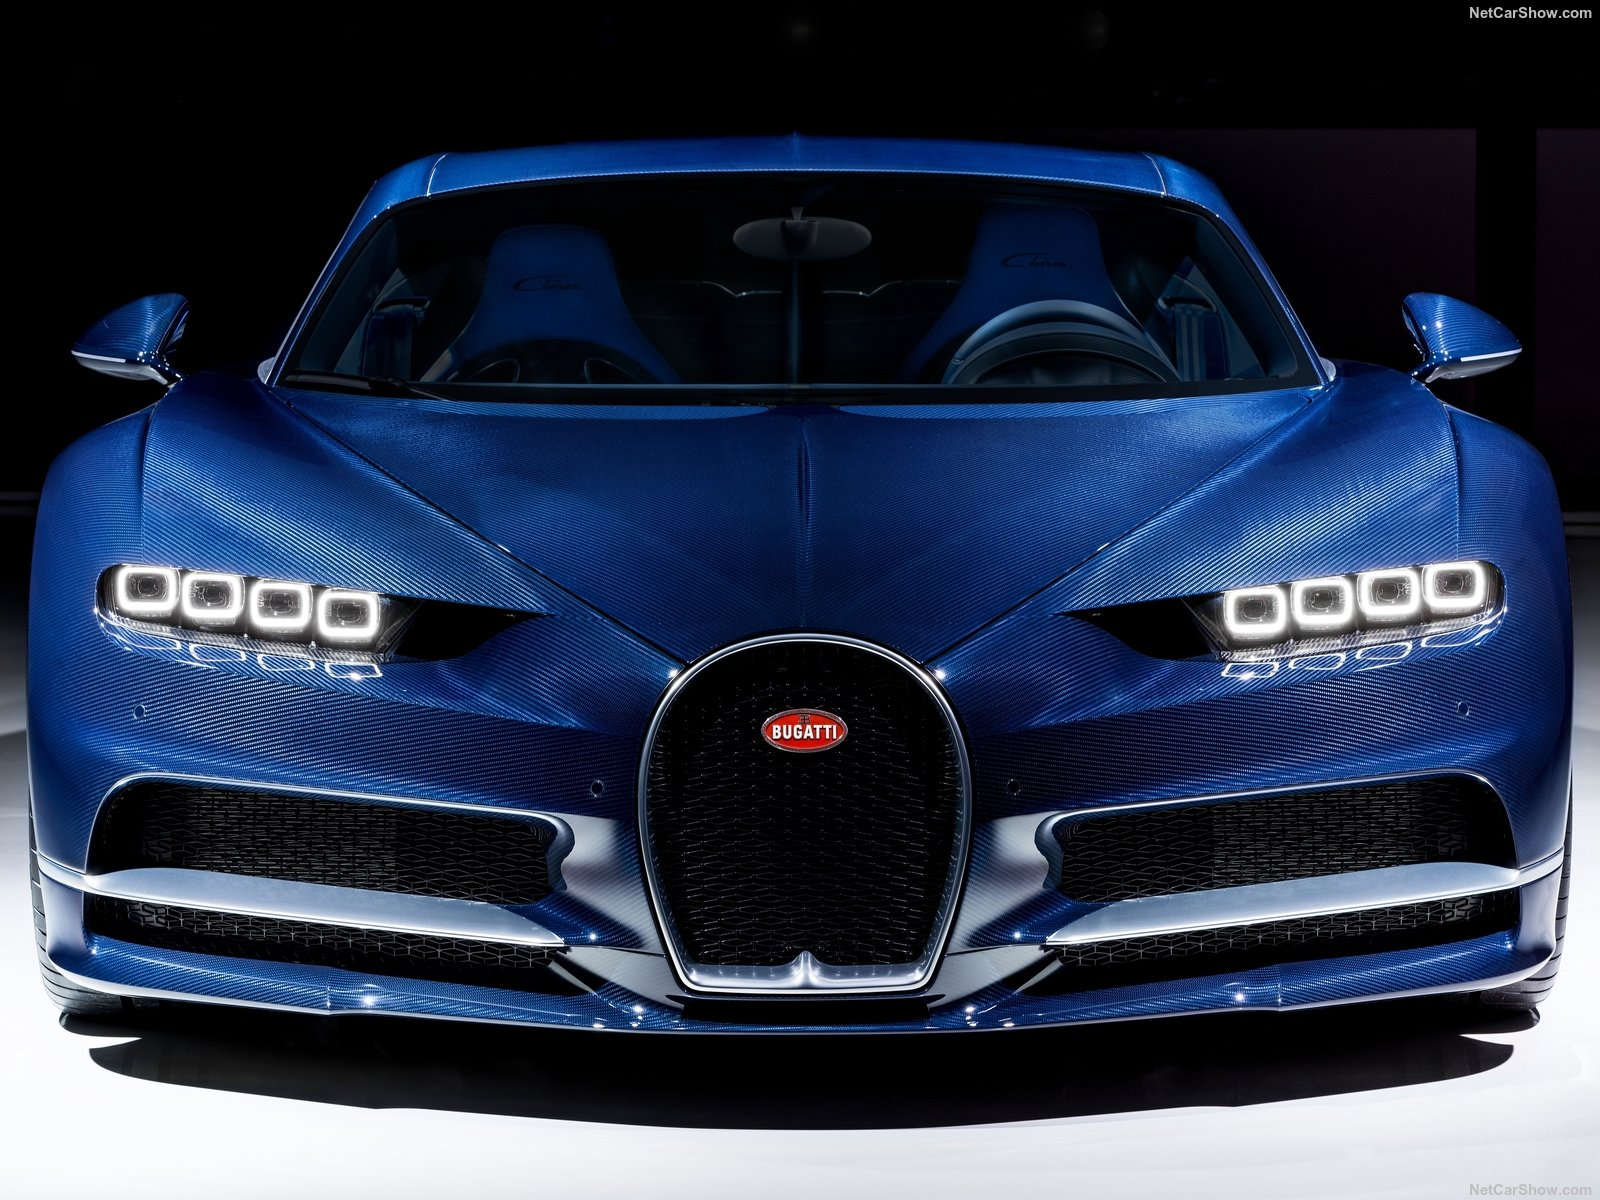 bugatti chiron vers les 500 km h nouveau record. Black Bedroom Furniture Sets. Home Design Ideas